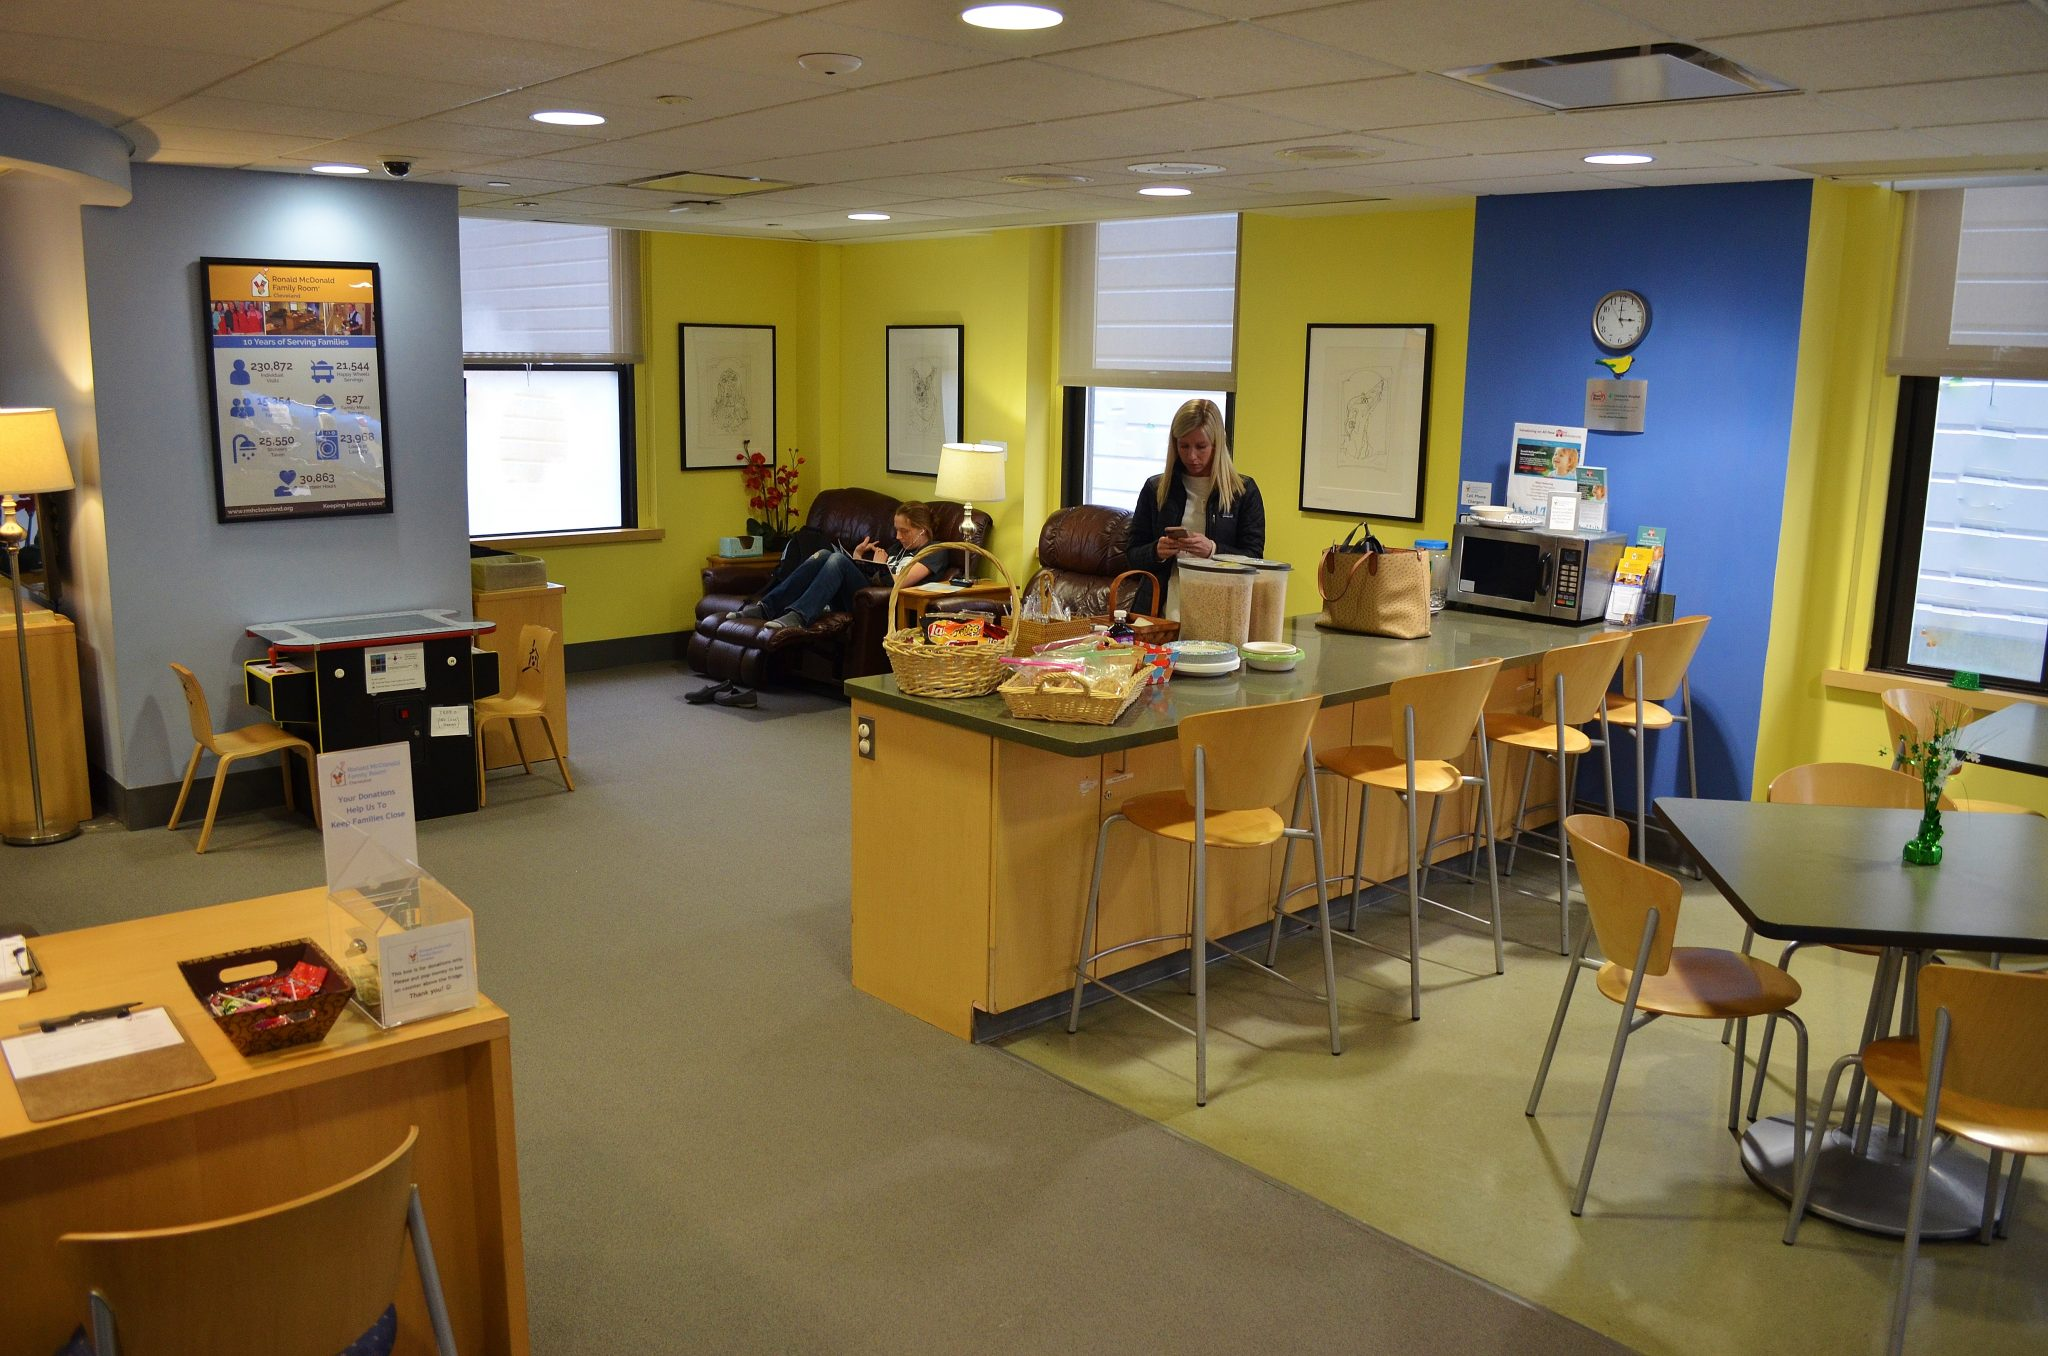 Family Room at Cleveland Clinic Children's